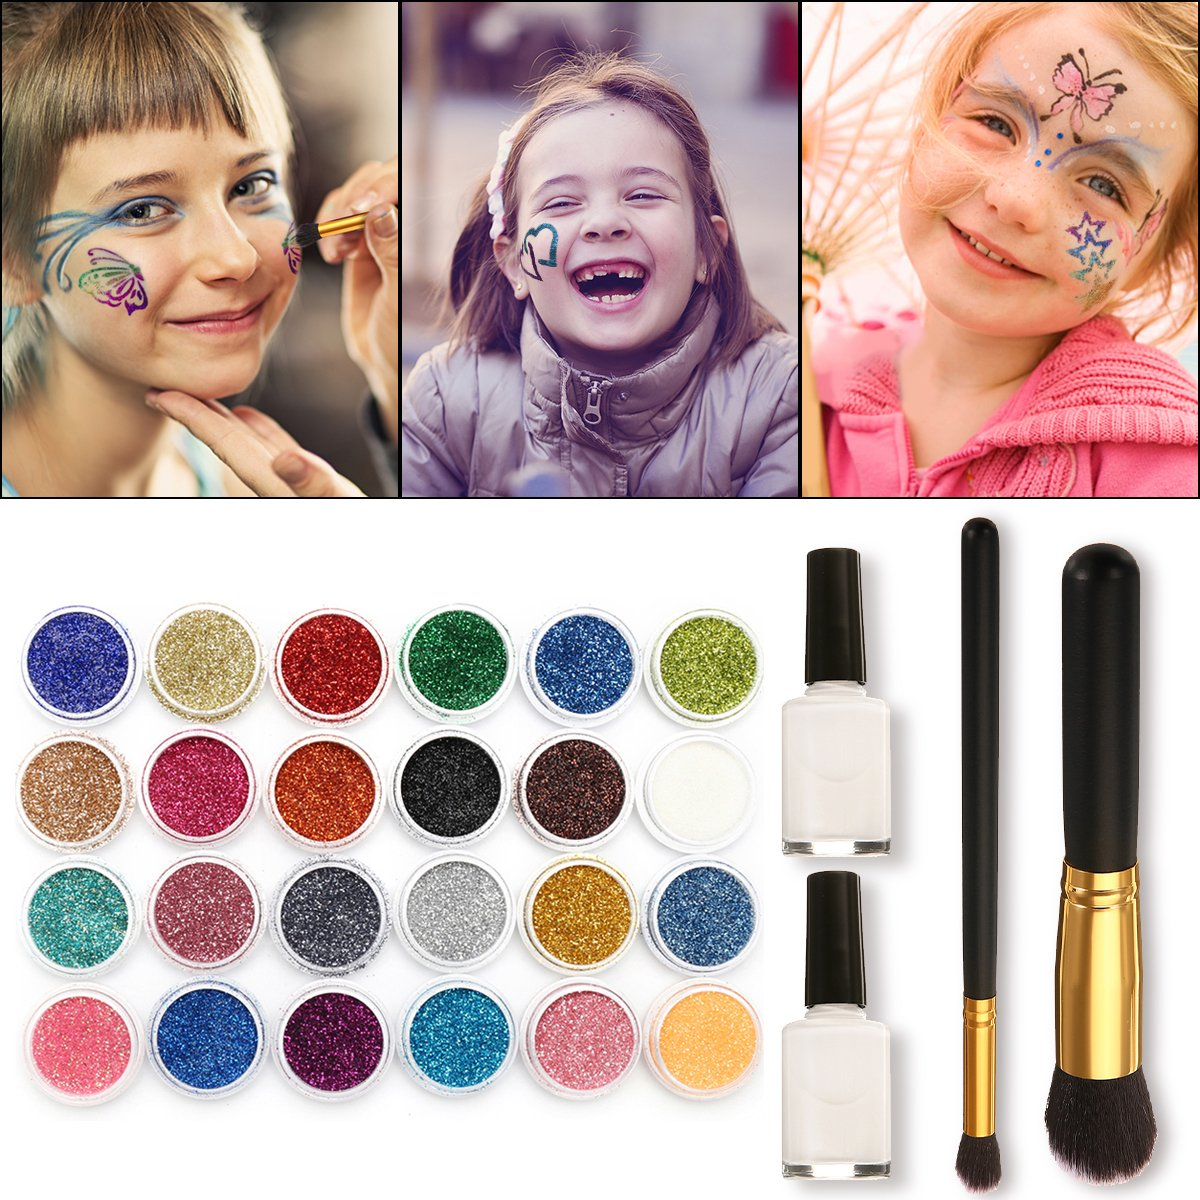 SKYMORE Glitter Tattoo Kit, Face paint, Temporary Tattoos, Make Up Body Glitter, With 24 Glitter Color,108 Uniquely Themed Tattoo Stencils, Body Art Design For Kids Teenager Adult,Halloween by SKYMORE